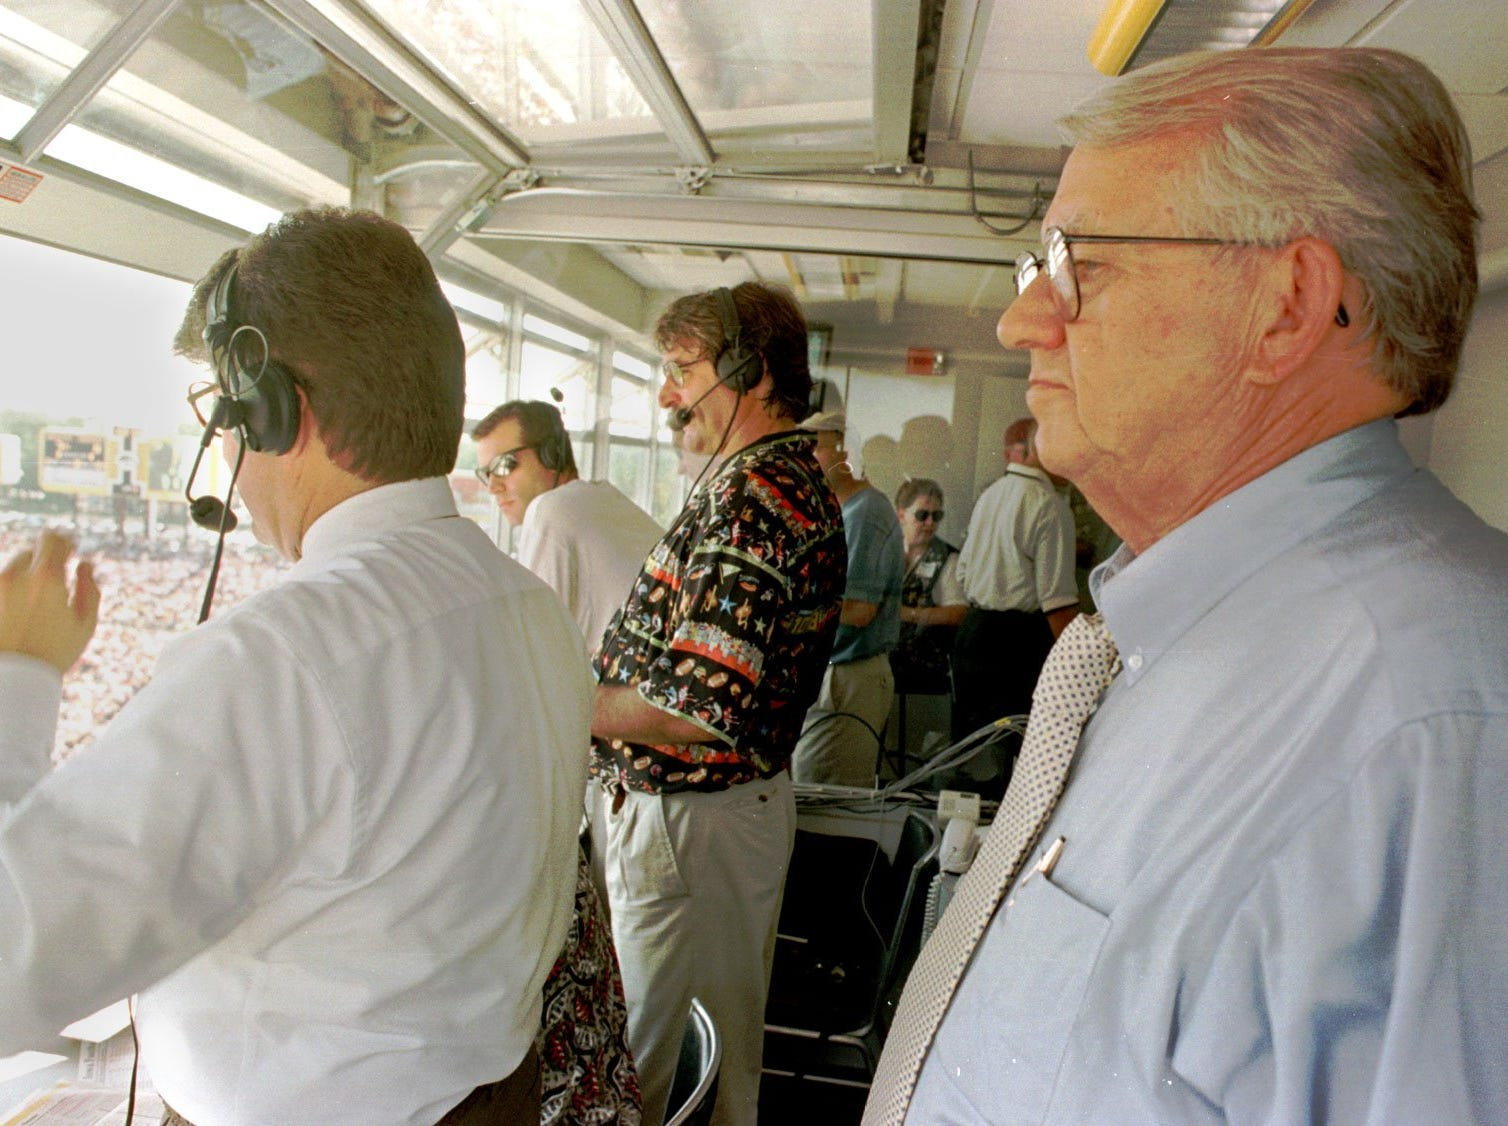 From 1997: Jim Zabel was in an unfamiliar position as an observer at Kinnick Stadium. At left is his replacement, Gary Dolphin, and analyst Ed Podolak.